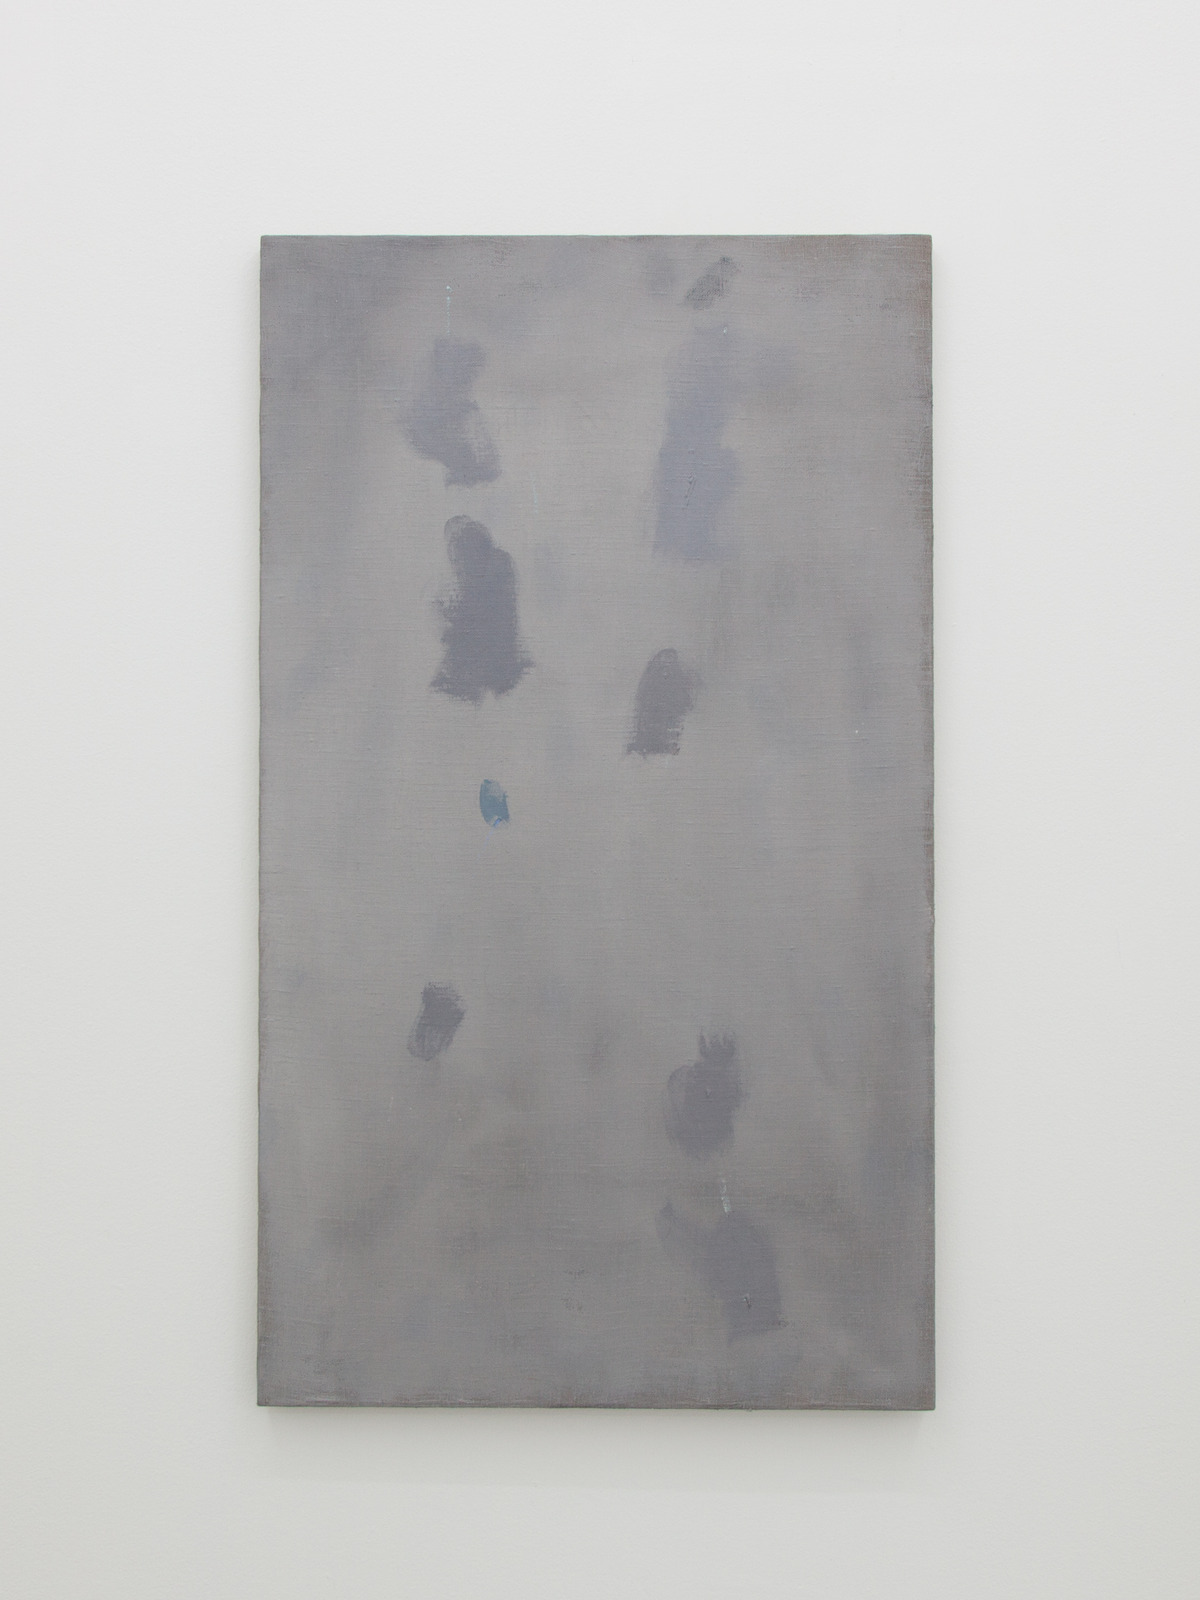 Matthew Musgrave, Old light